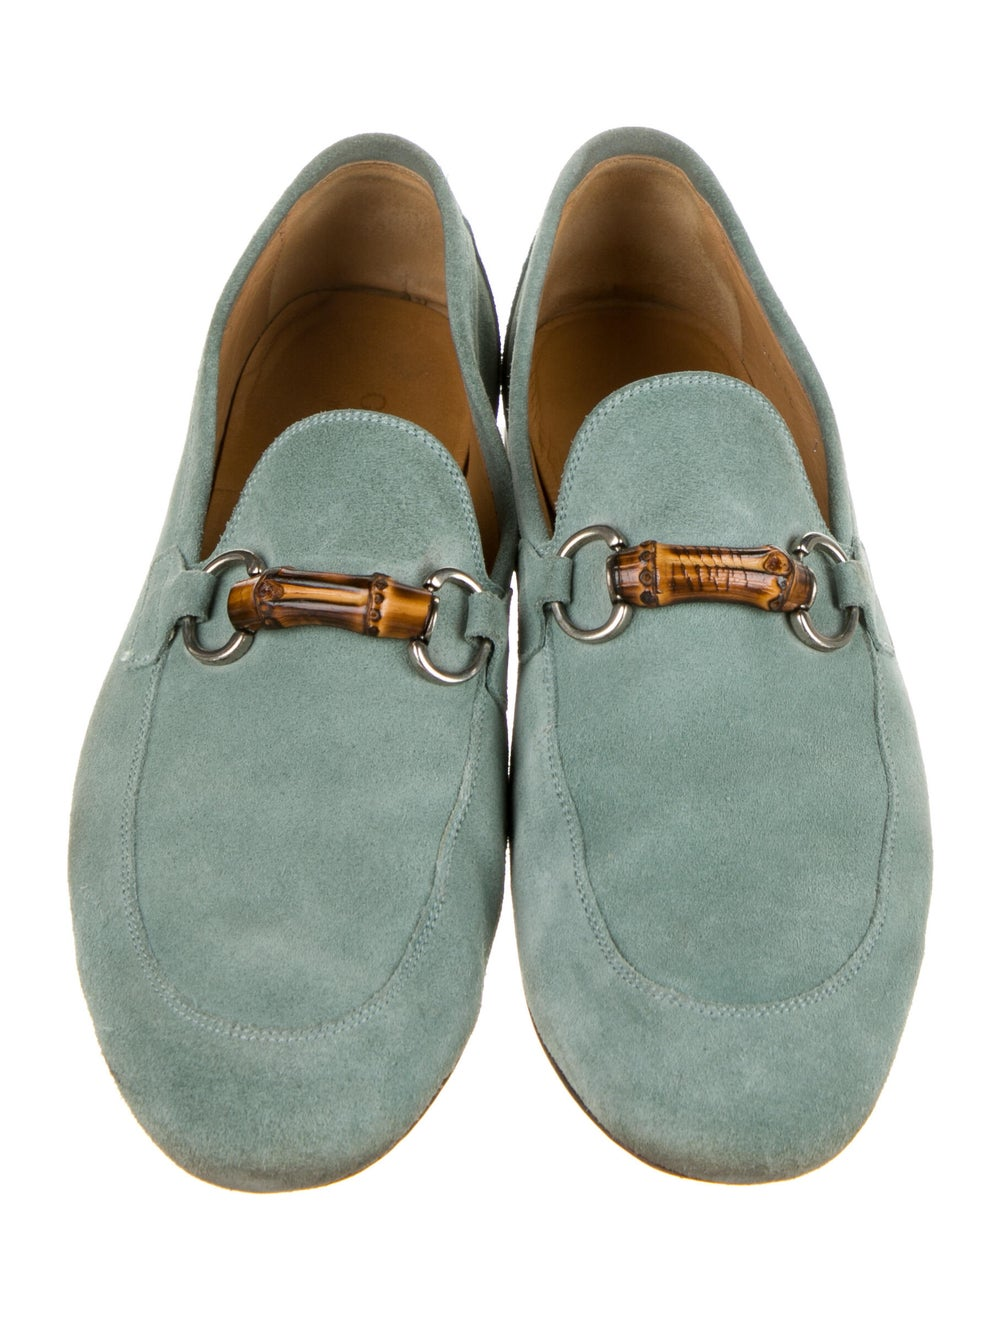 Gucci Horsebit Accent Suede Loafers Green - image 3